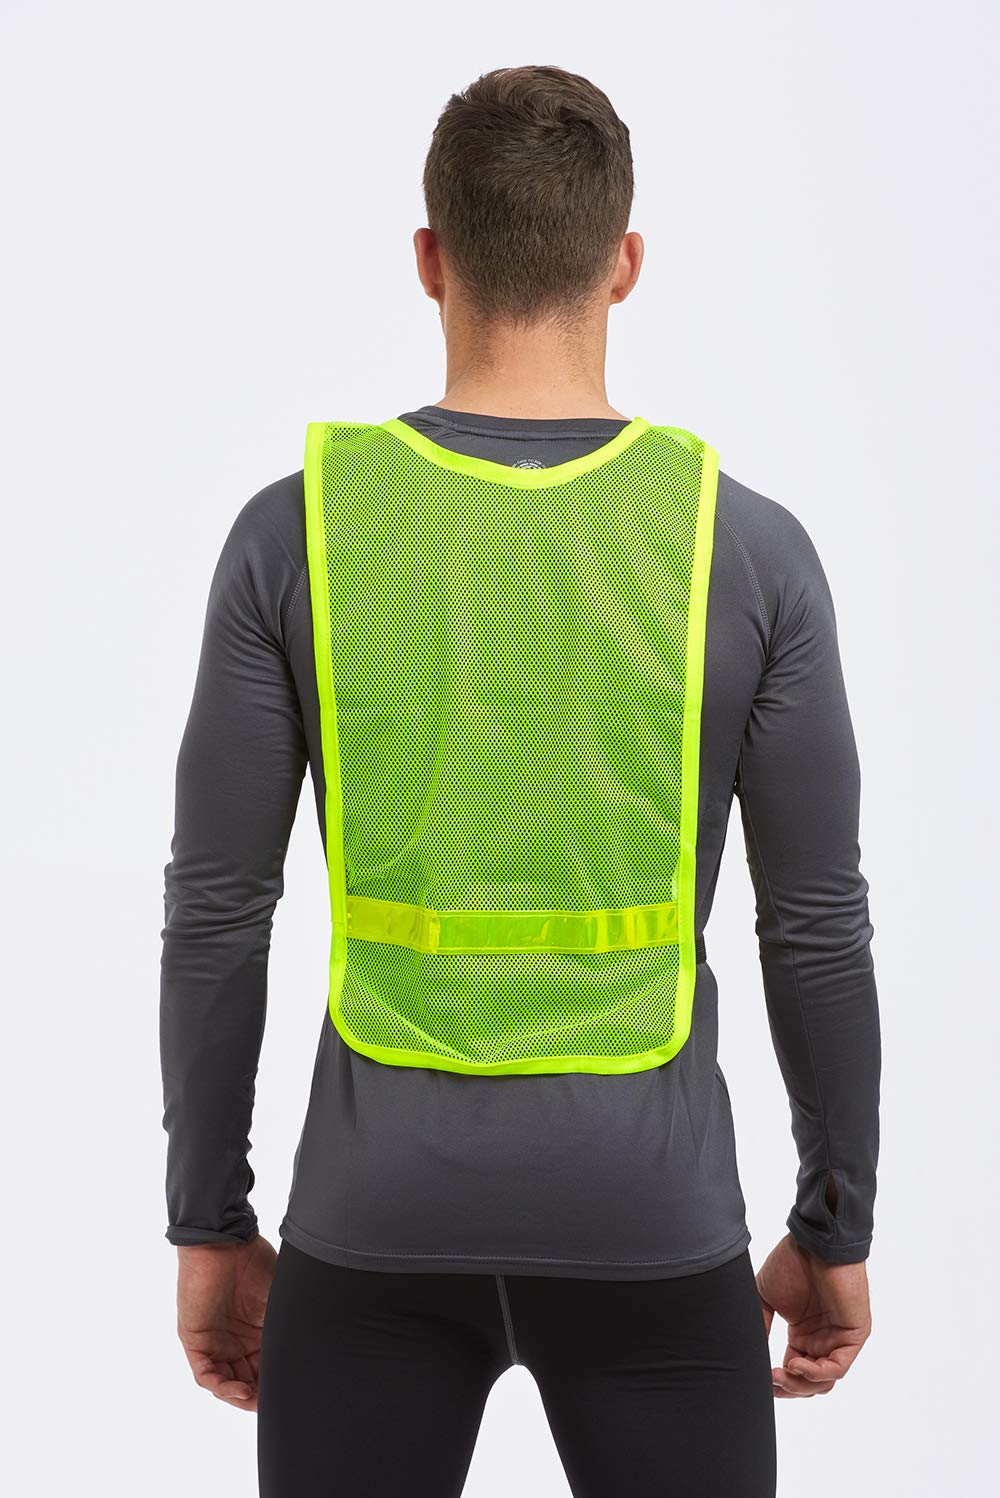 Safety Clothing Security & Protection Objective Black Safety Vest High Visibility Breathable Mesh Pvc Tape Outdoor Clothes With Traditional Methods